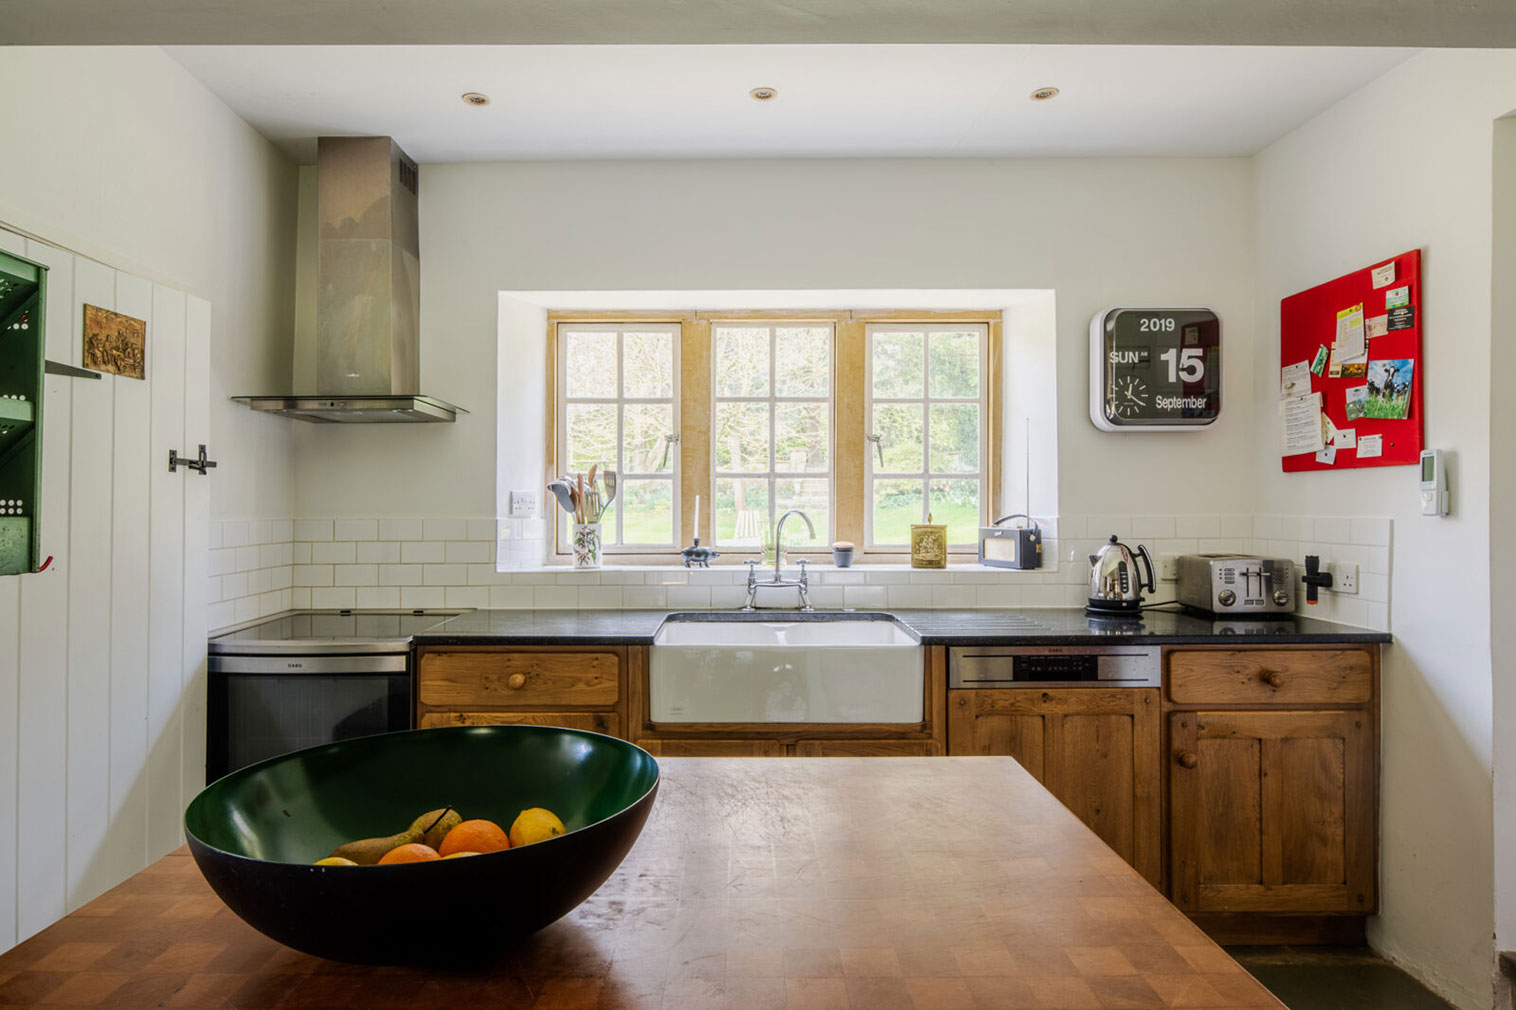 The kitchen has traditional oak cabinetry and granite worktops